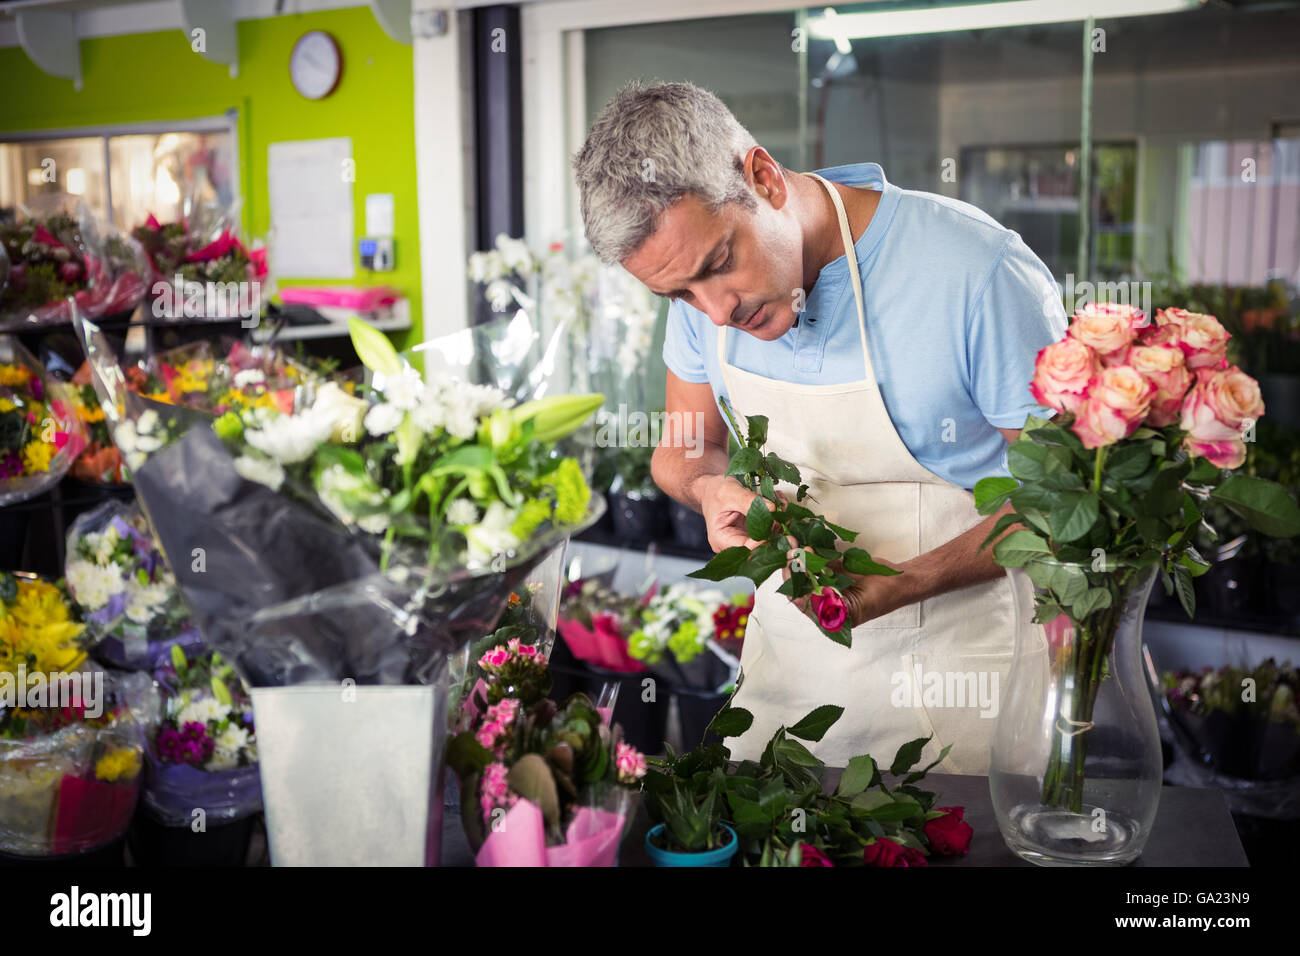 Male florist arranging flowers - Stock Image